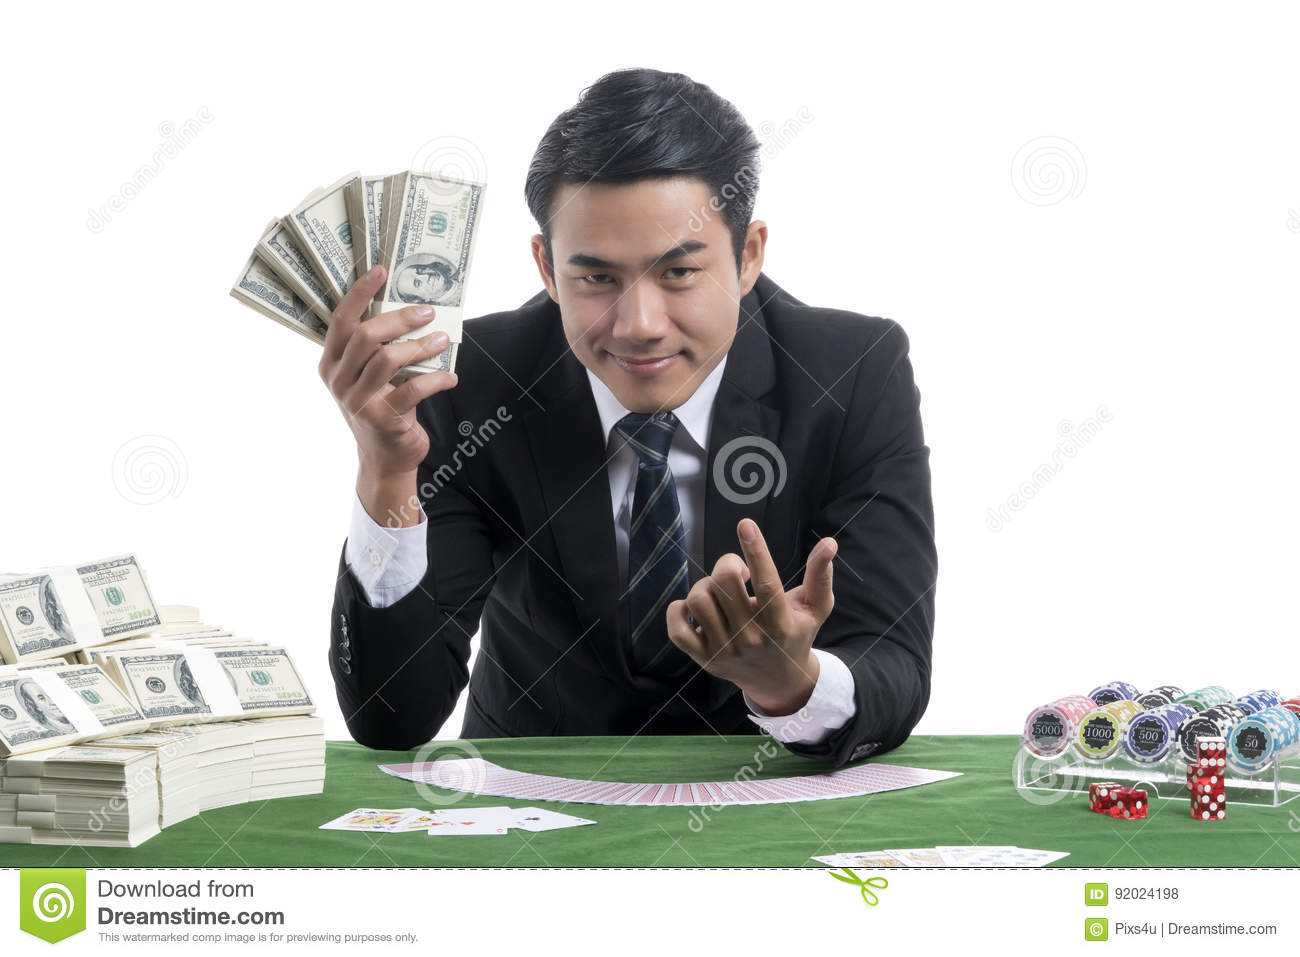 The dealer man trigeer finger invite to a gambler and show a lot